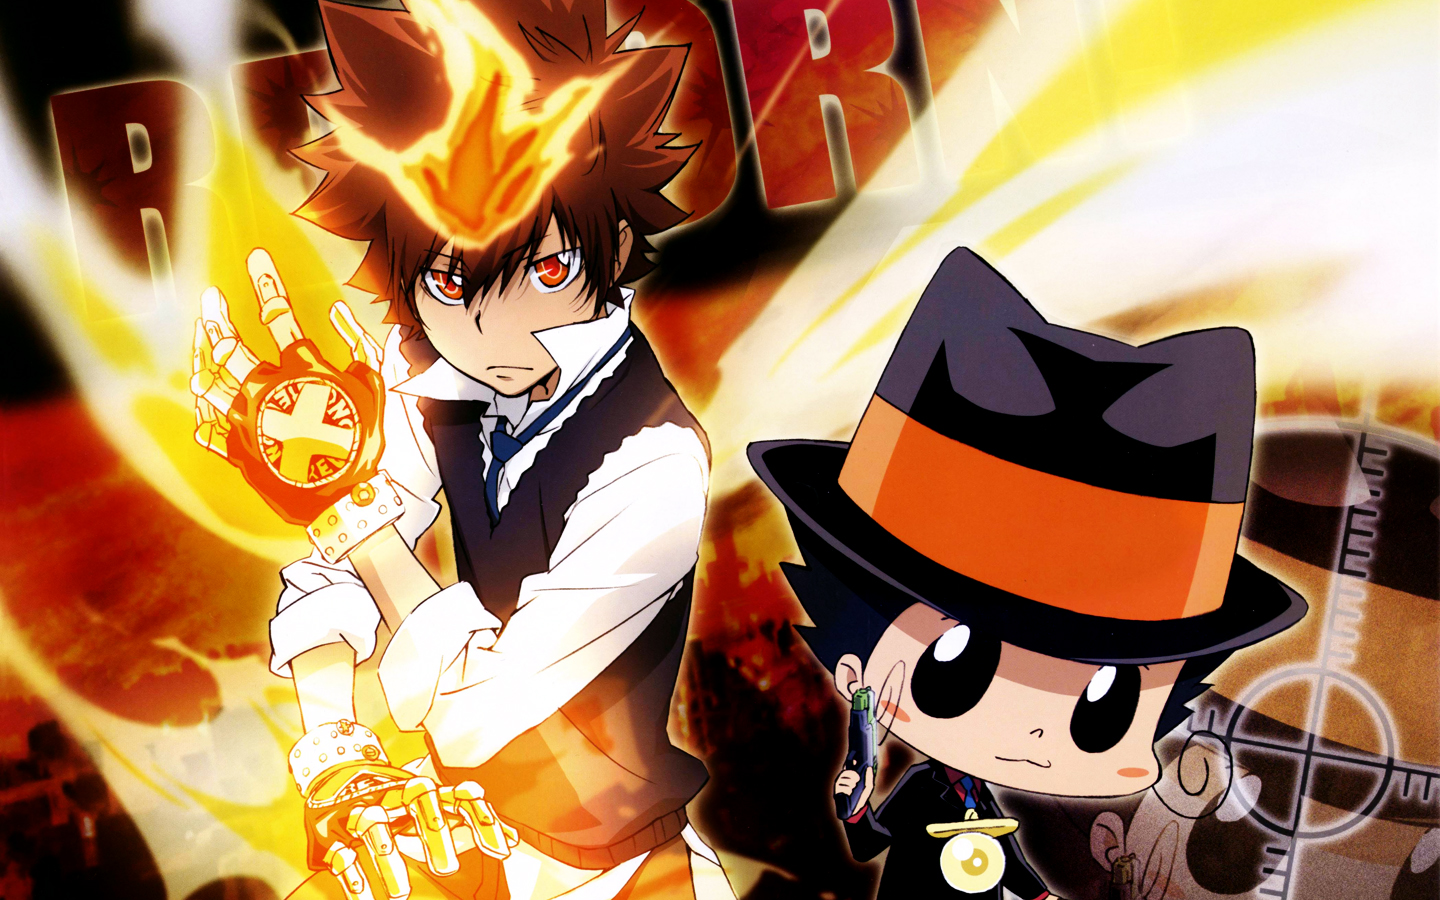 Katekyo Hitman Reborn wallpaper 105132 1440x900